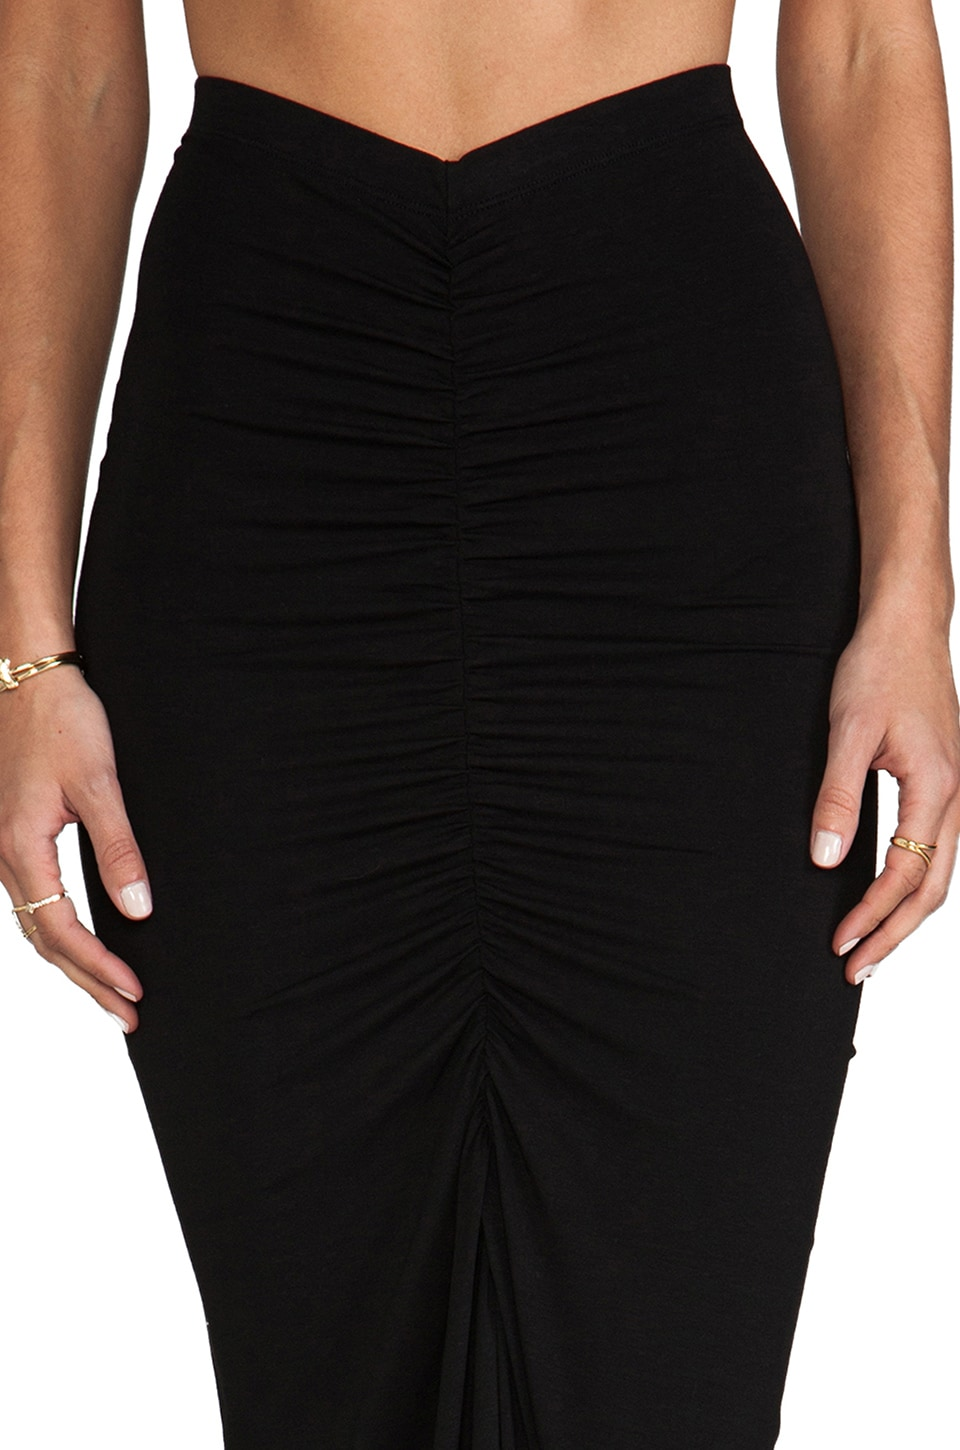 Boulee AJ Maxi Skirt in Black